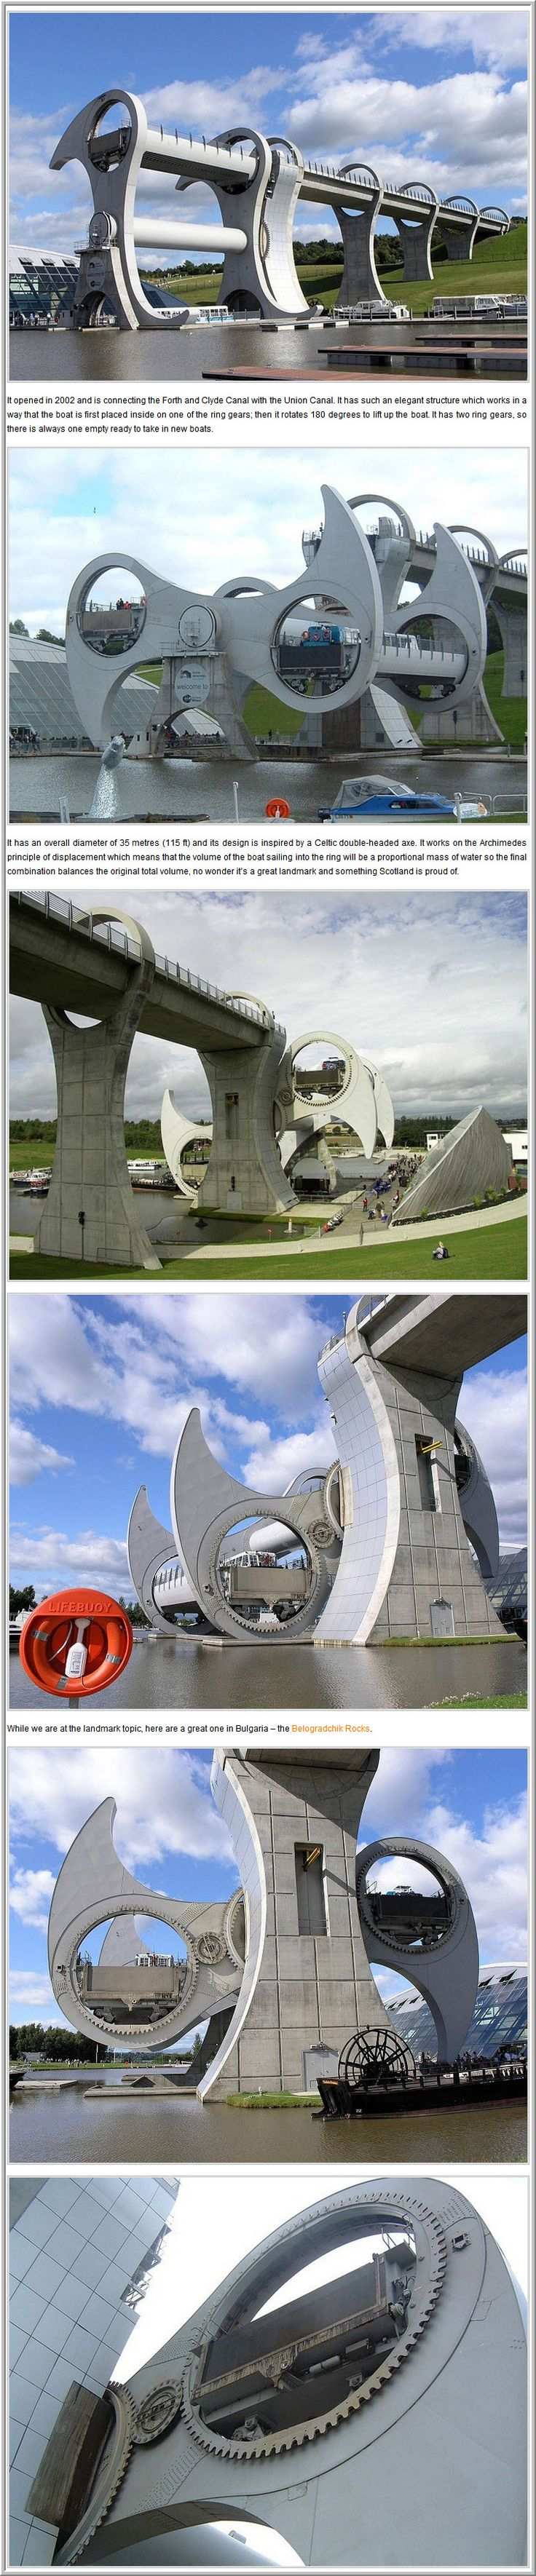 The Amazing Falkirk Wheel Of Scotland -   How is it possible to transport a huge boat from one water level to another much higher one? Scotland has the answer; a gigantic wheel that lifts boats. We are talking about the famous Falkirk Wheel that is an engineering landmark for Scotland